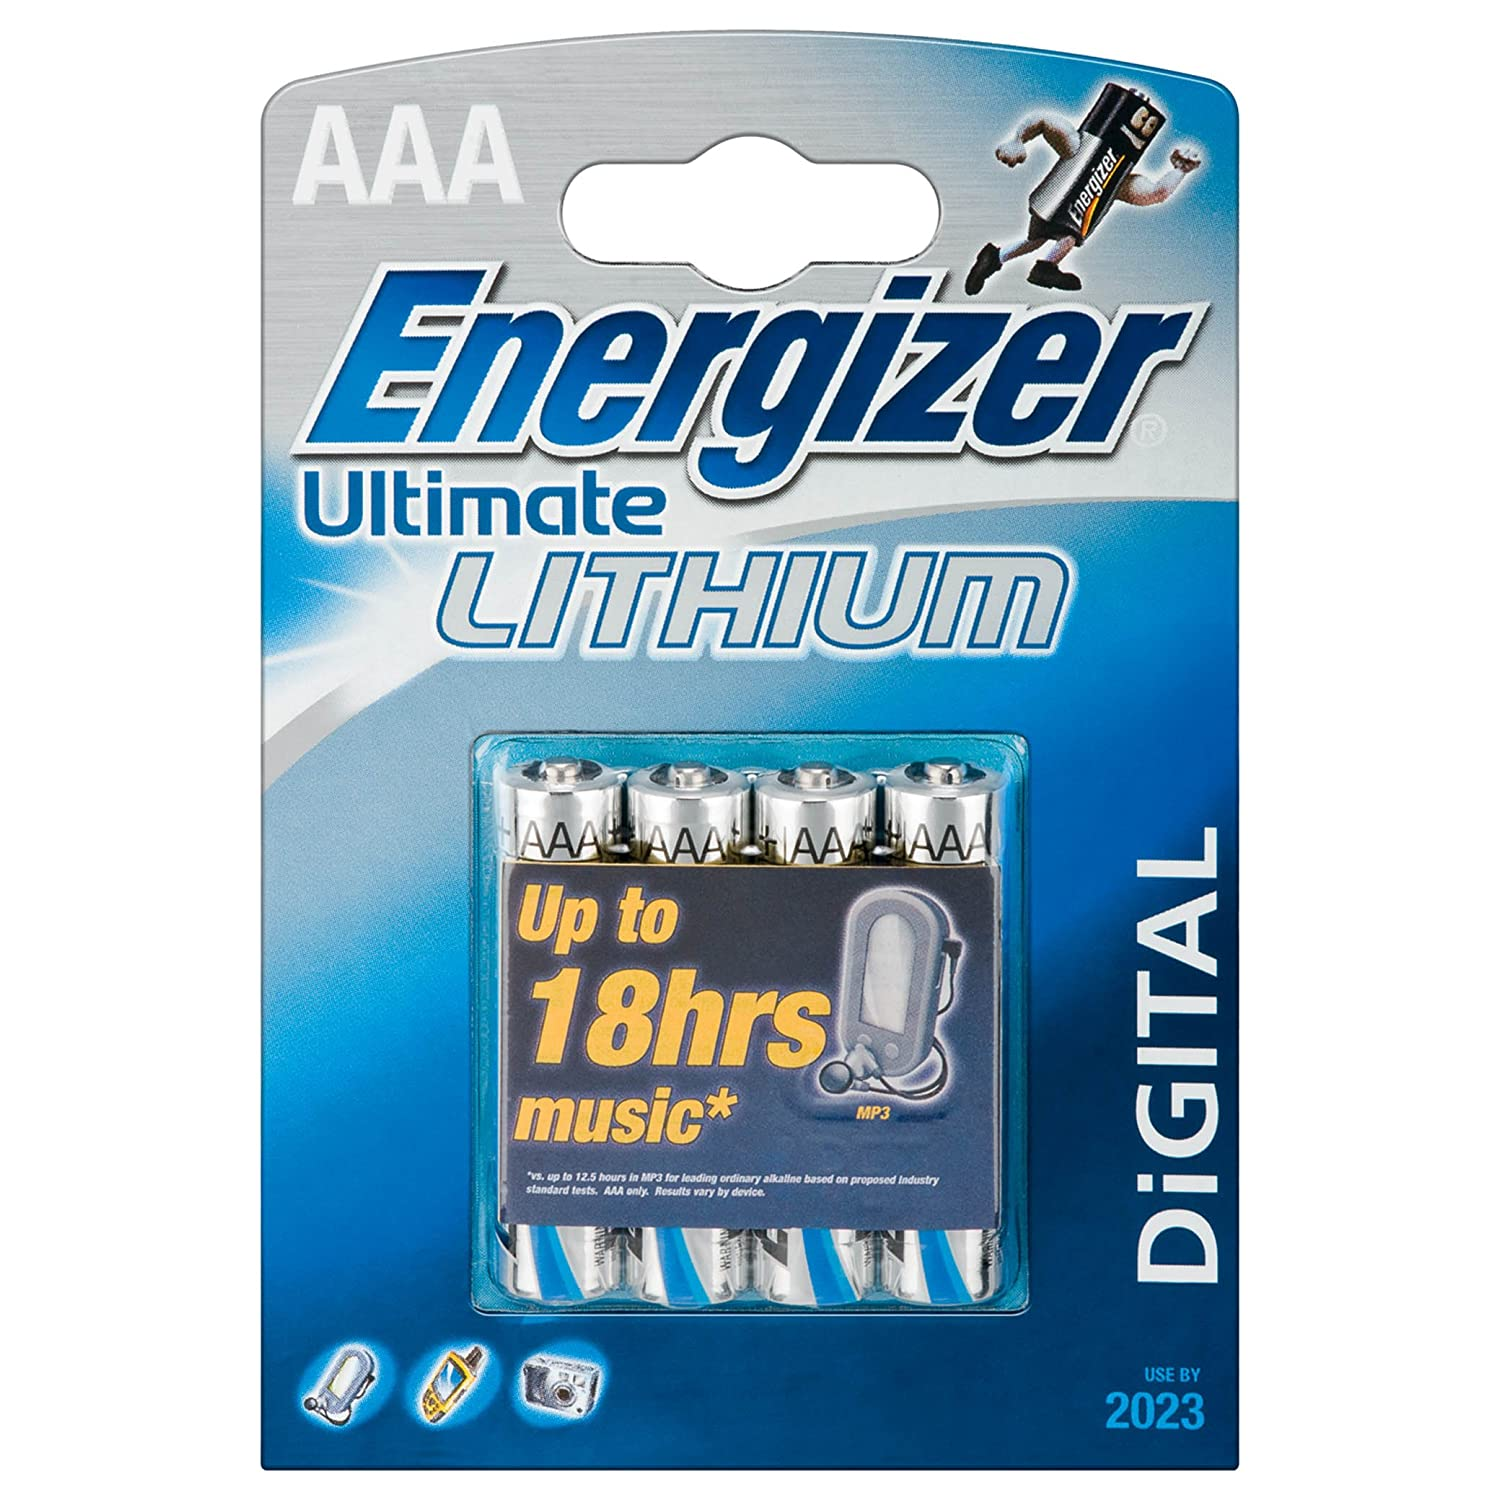 Energizer Lithium AA / AAA Batteries 2 Packs Of 4 £11.32